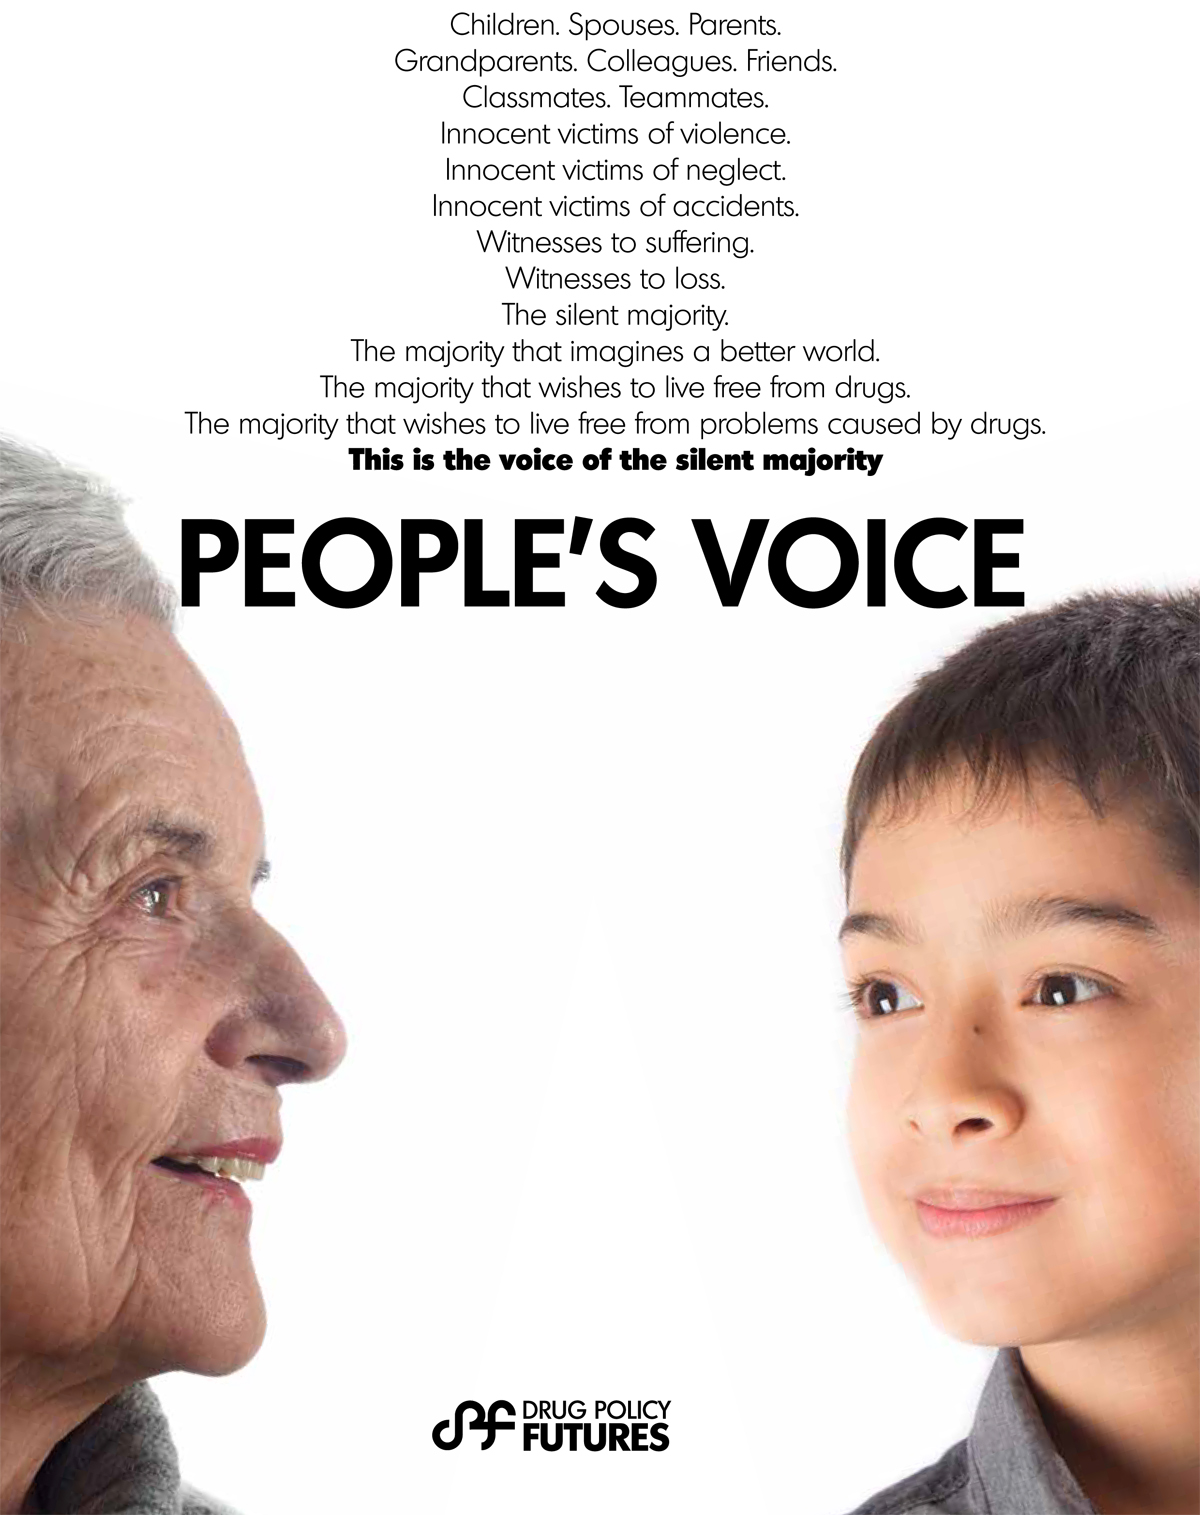 Page 6 1200p - DPF report 2019 - Peoples' Voice-6.jpg